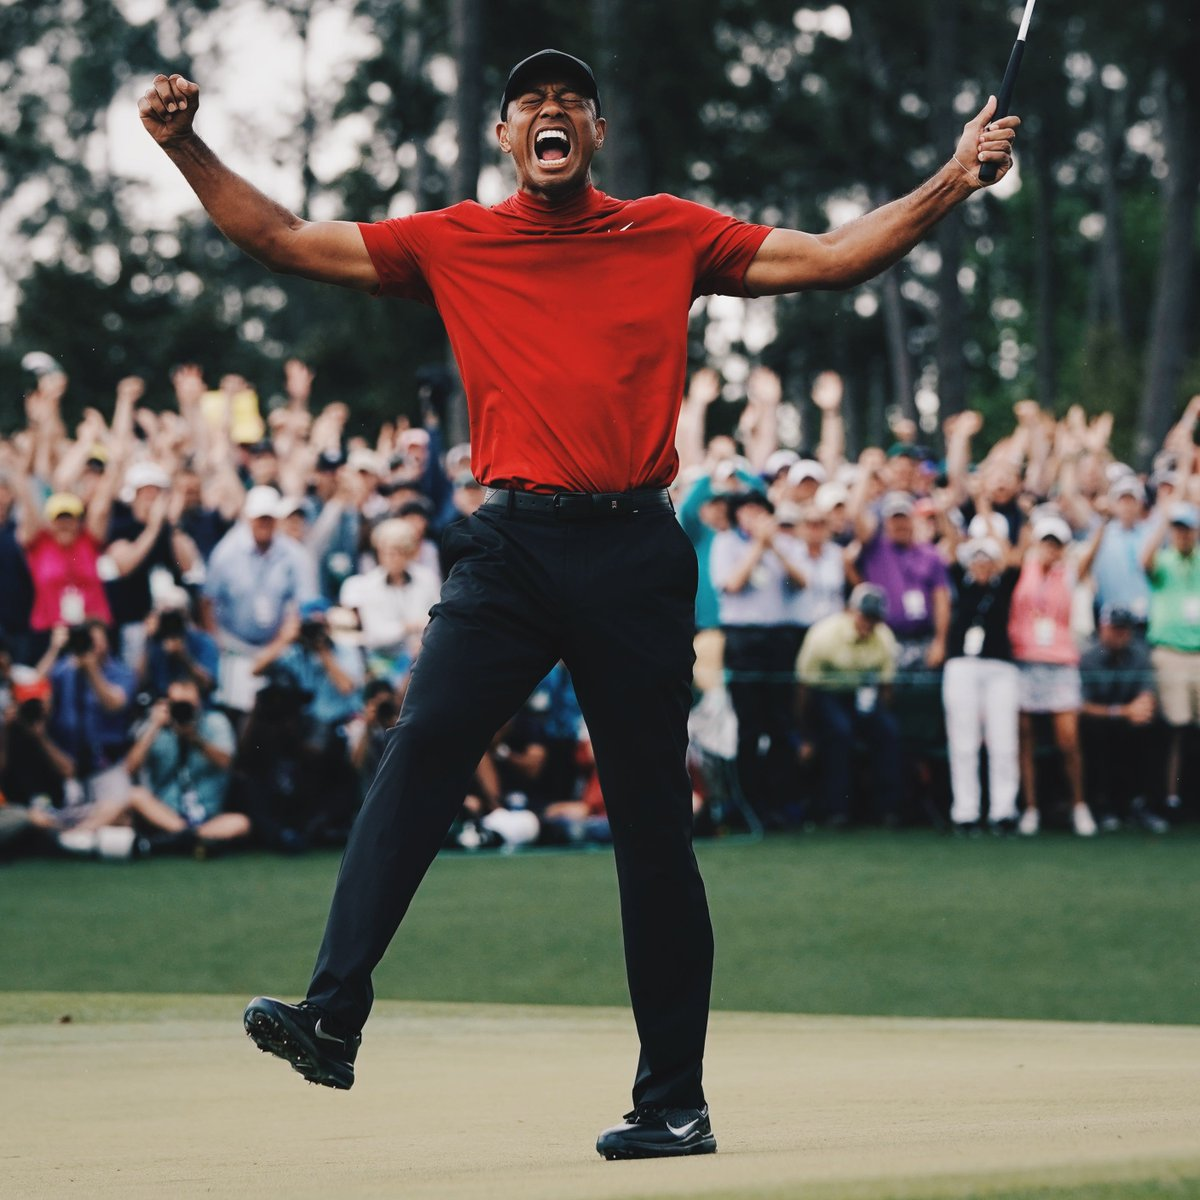 One of the greatest comebacks in sports history.  2008: Wins US Open on torn ACL 2010: Neck injury 2011: Sprained MCL, Achilles 2012: Achilles injury 2014: Back surgery 2015: Back surgery 2017: Back surgery 2019: Wins Masters (first major since 2008)